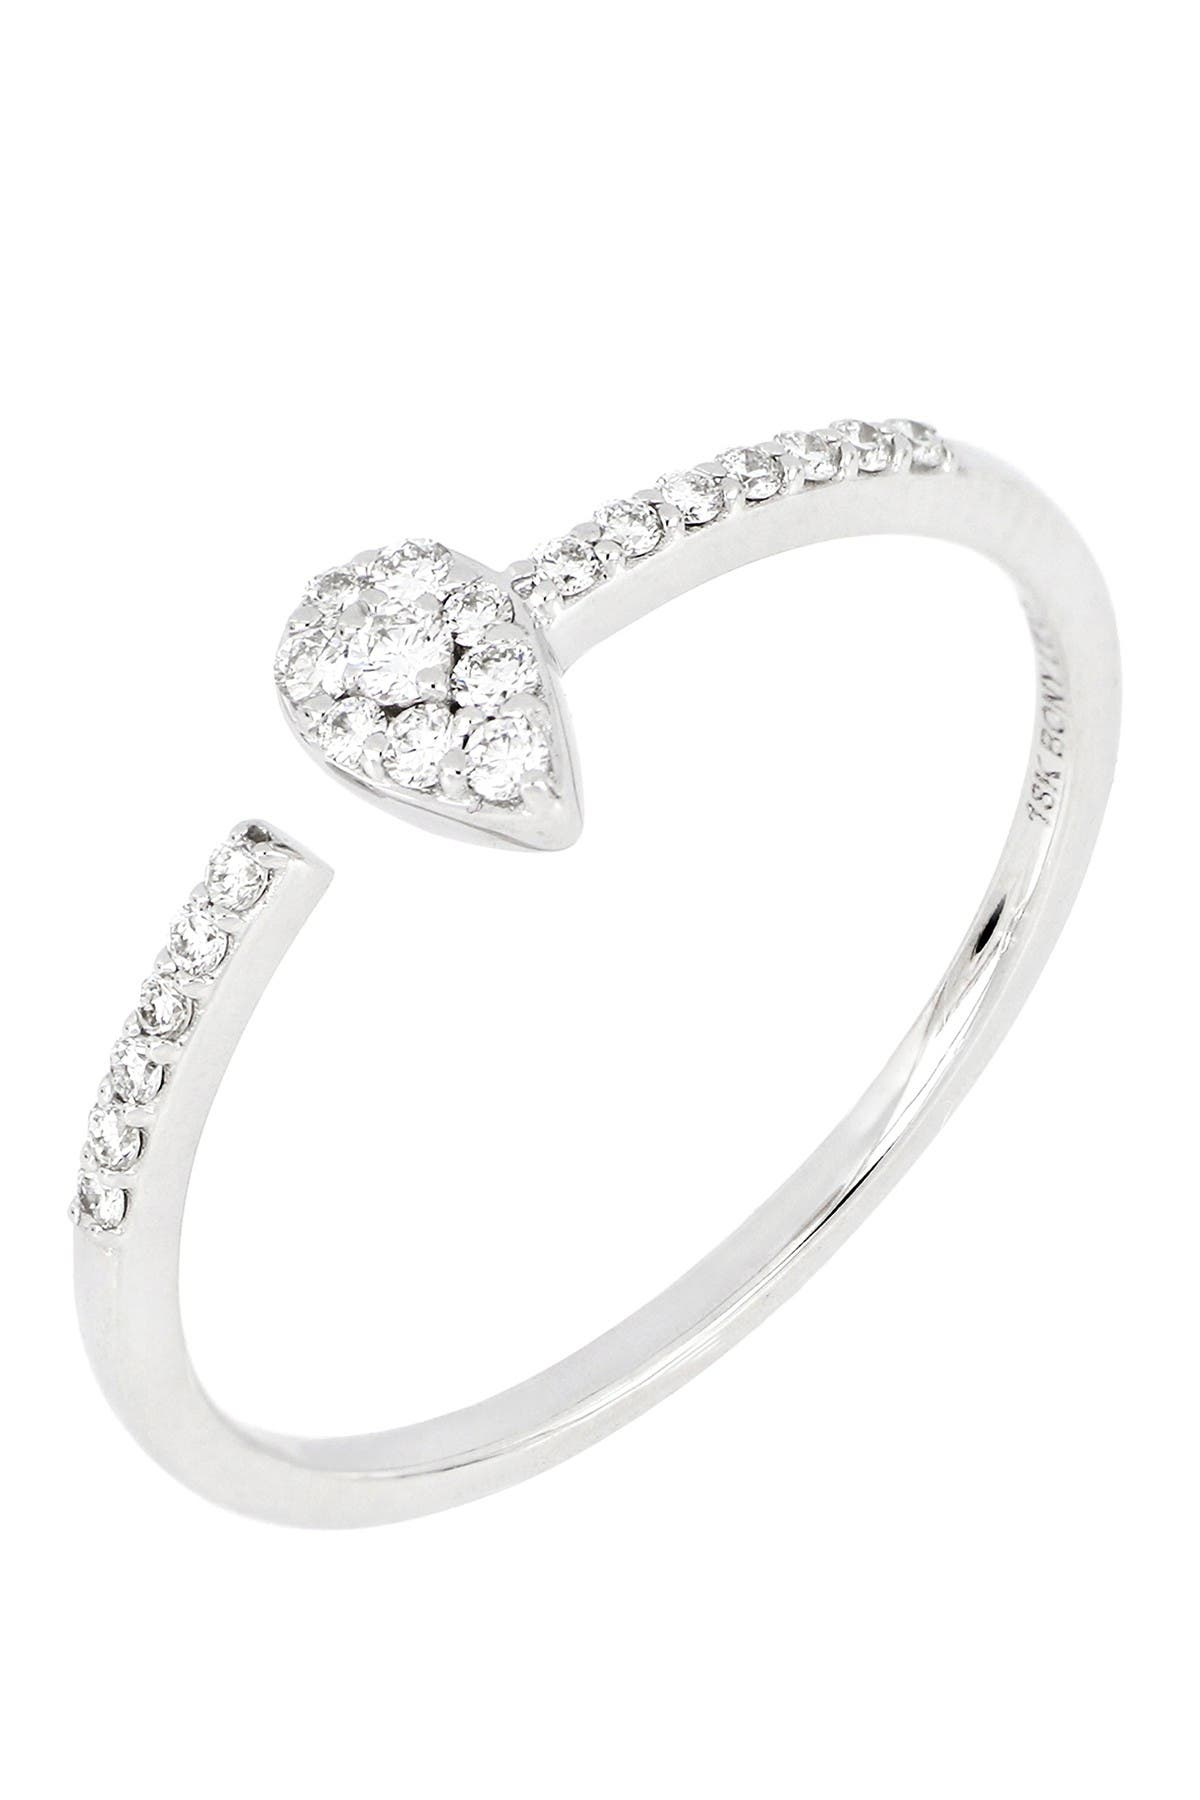 Image of Bony Levy 18k White Gold & Pave Diamond Pear Shape Coil Ring - 0.13 ctw